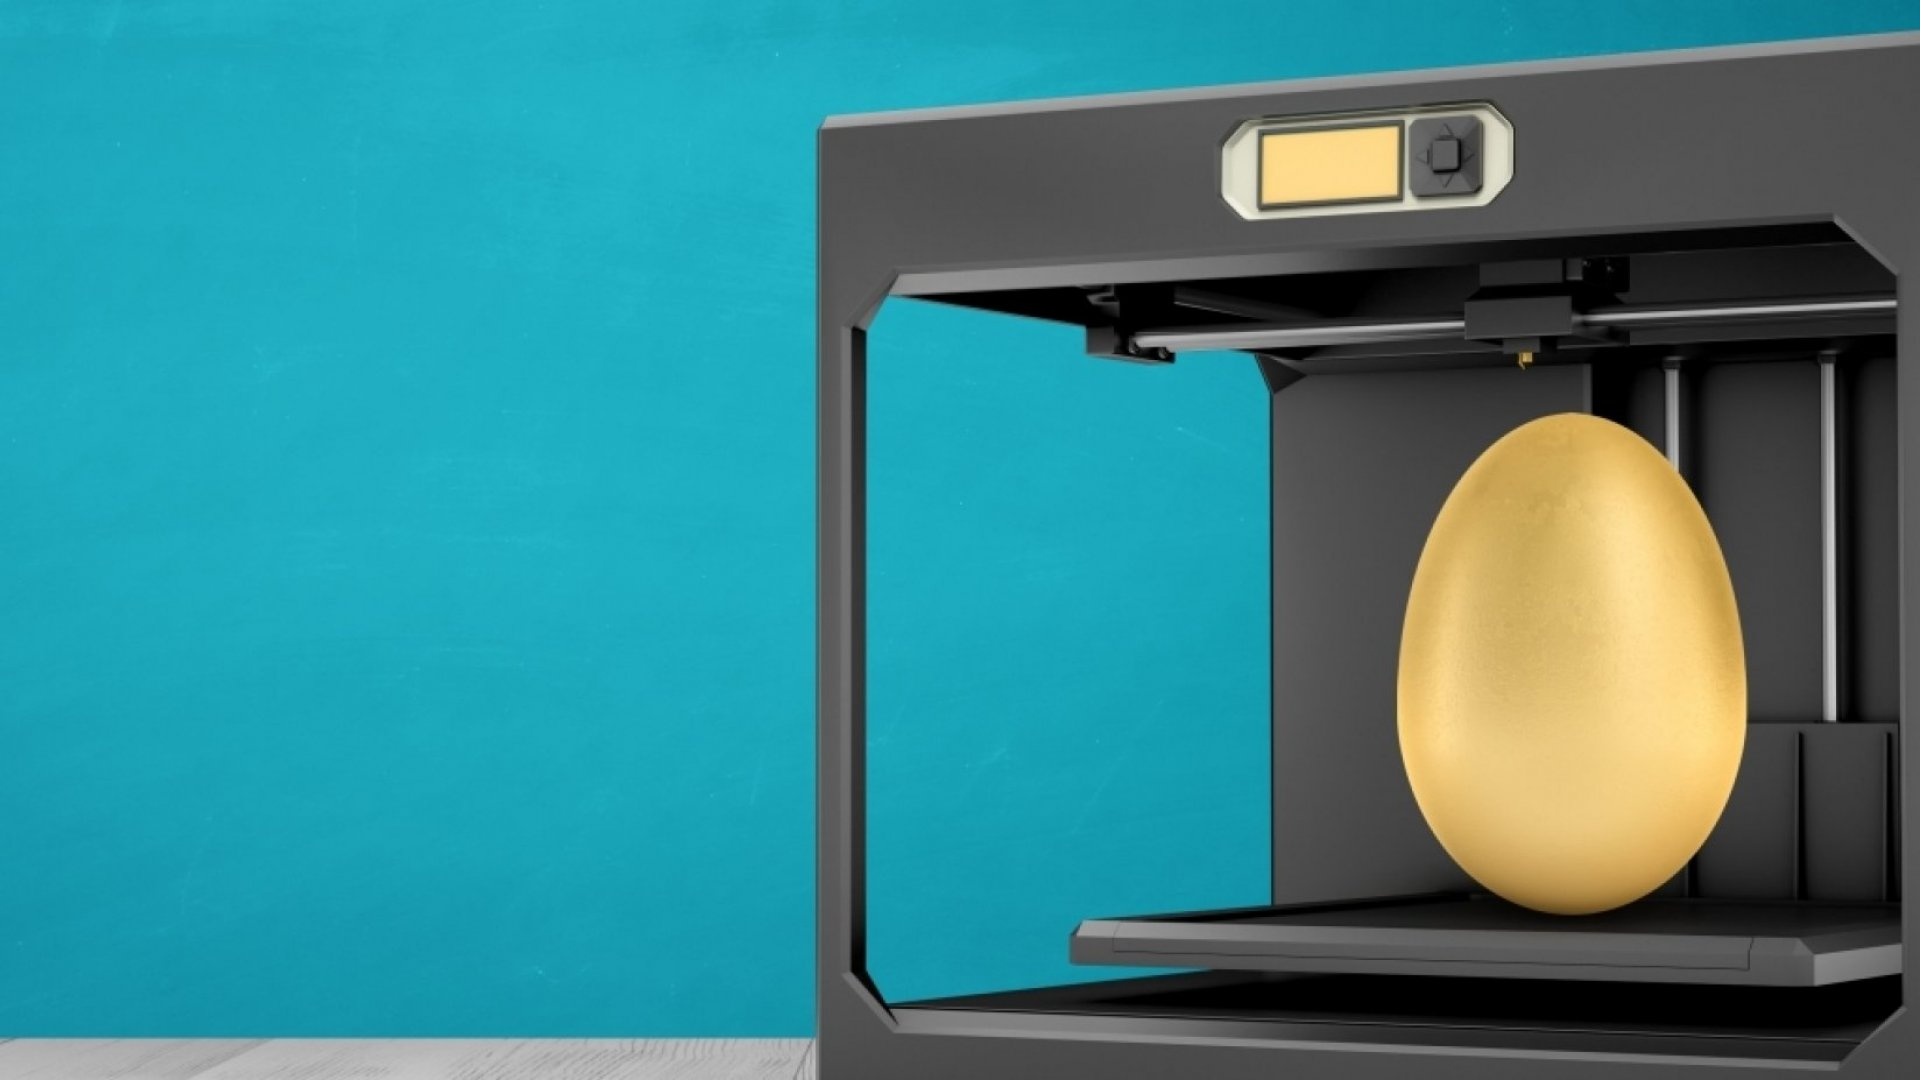 Metal 3D Printing is ready to bring real value and be the breakthrough disruptive technology we need.